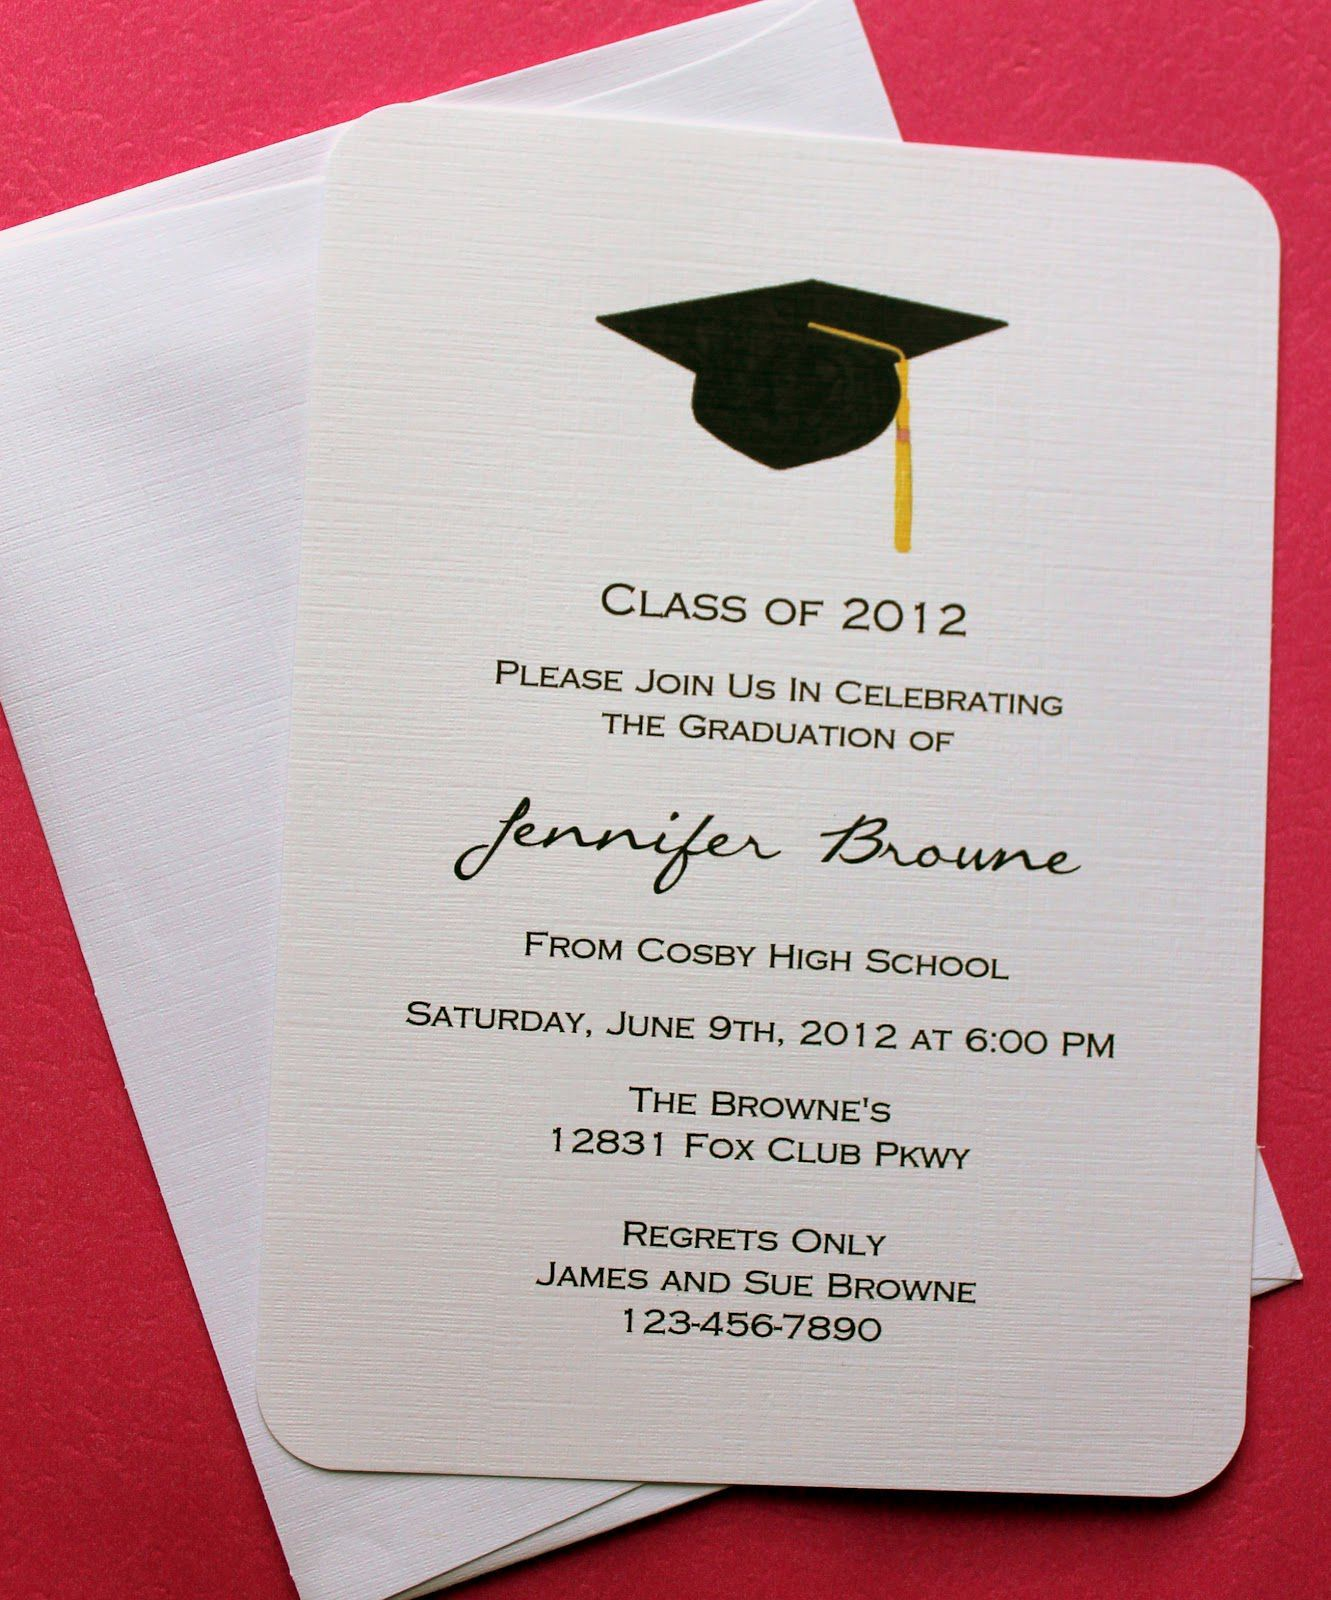 007 Fantastic College Graduation Invitation Template Image  Party Free For WordFull